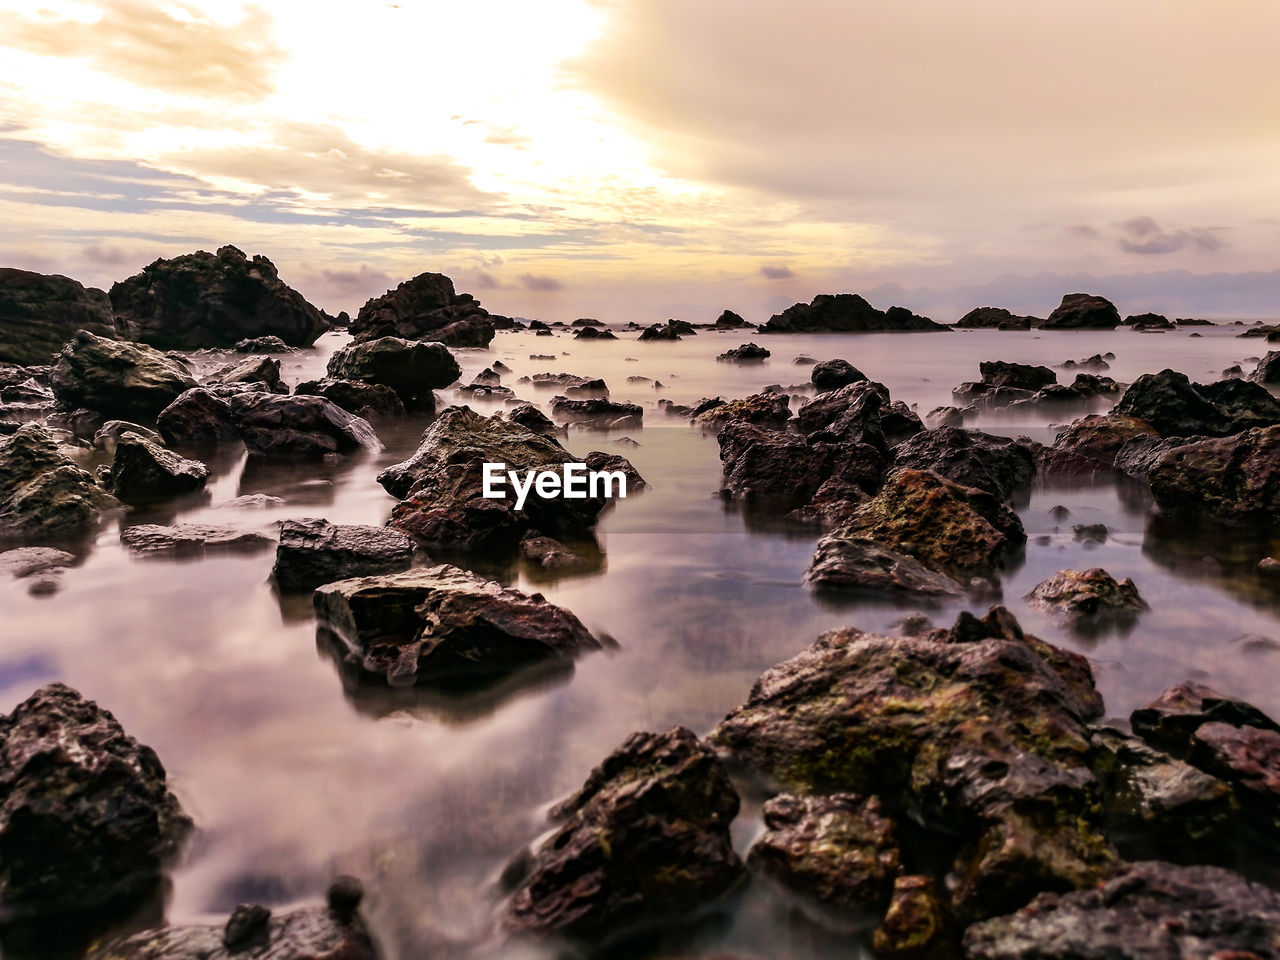 nature, beauty in nature, water, sky, scenics, sunset, rock - object, no people, tranquility, idyllic, tranquil scene, outdoors, cloud - sky, sea, long exposure, motion, day